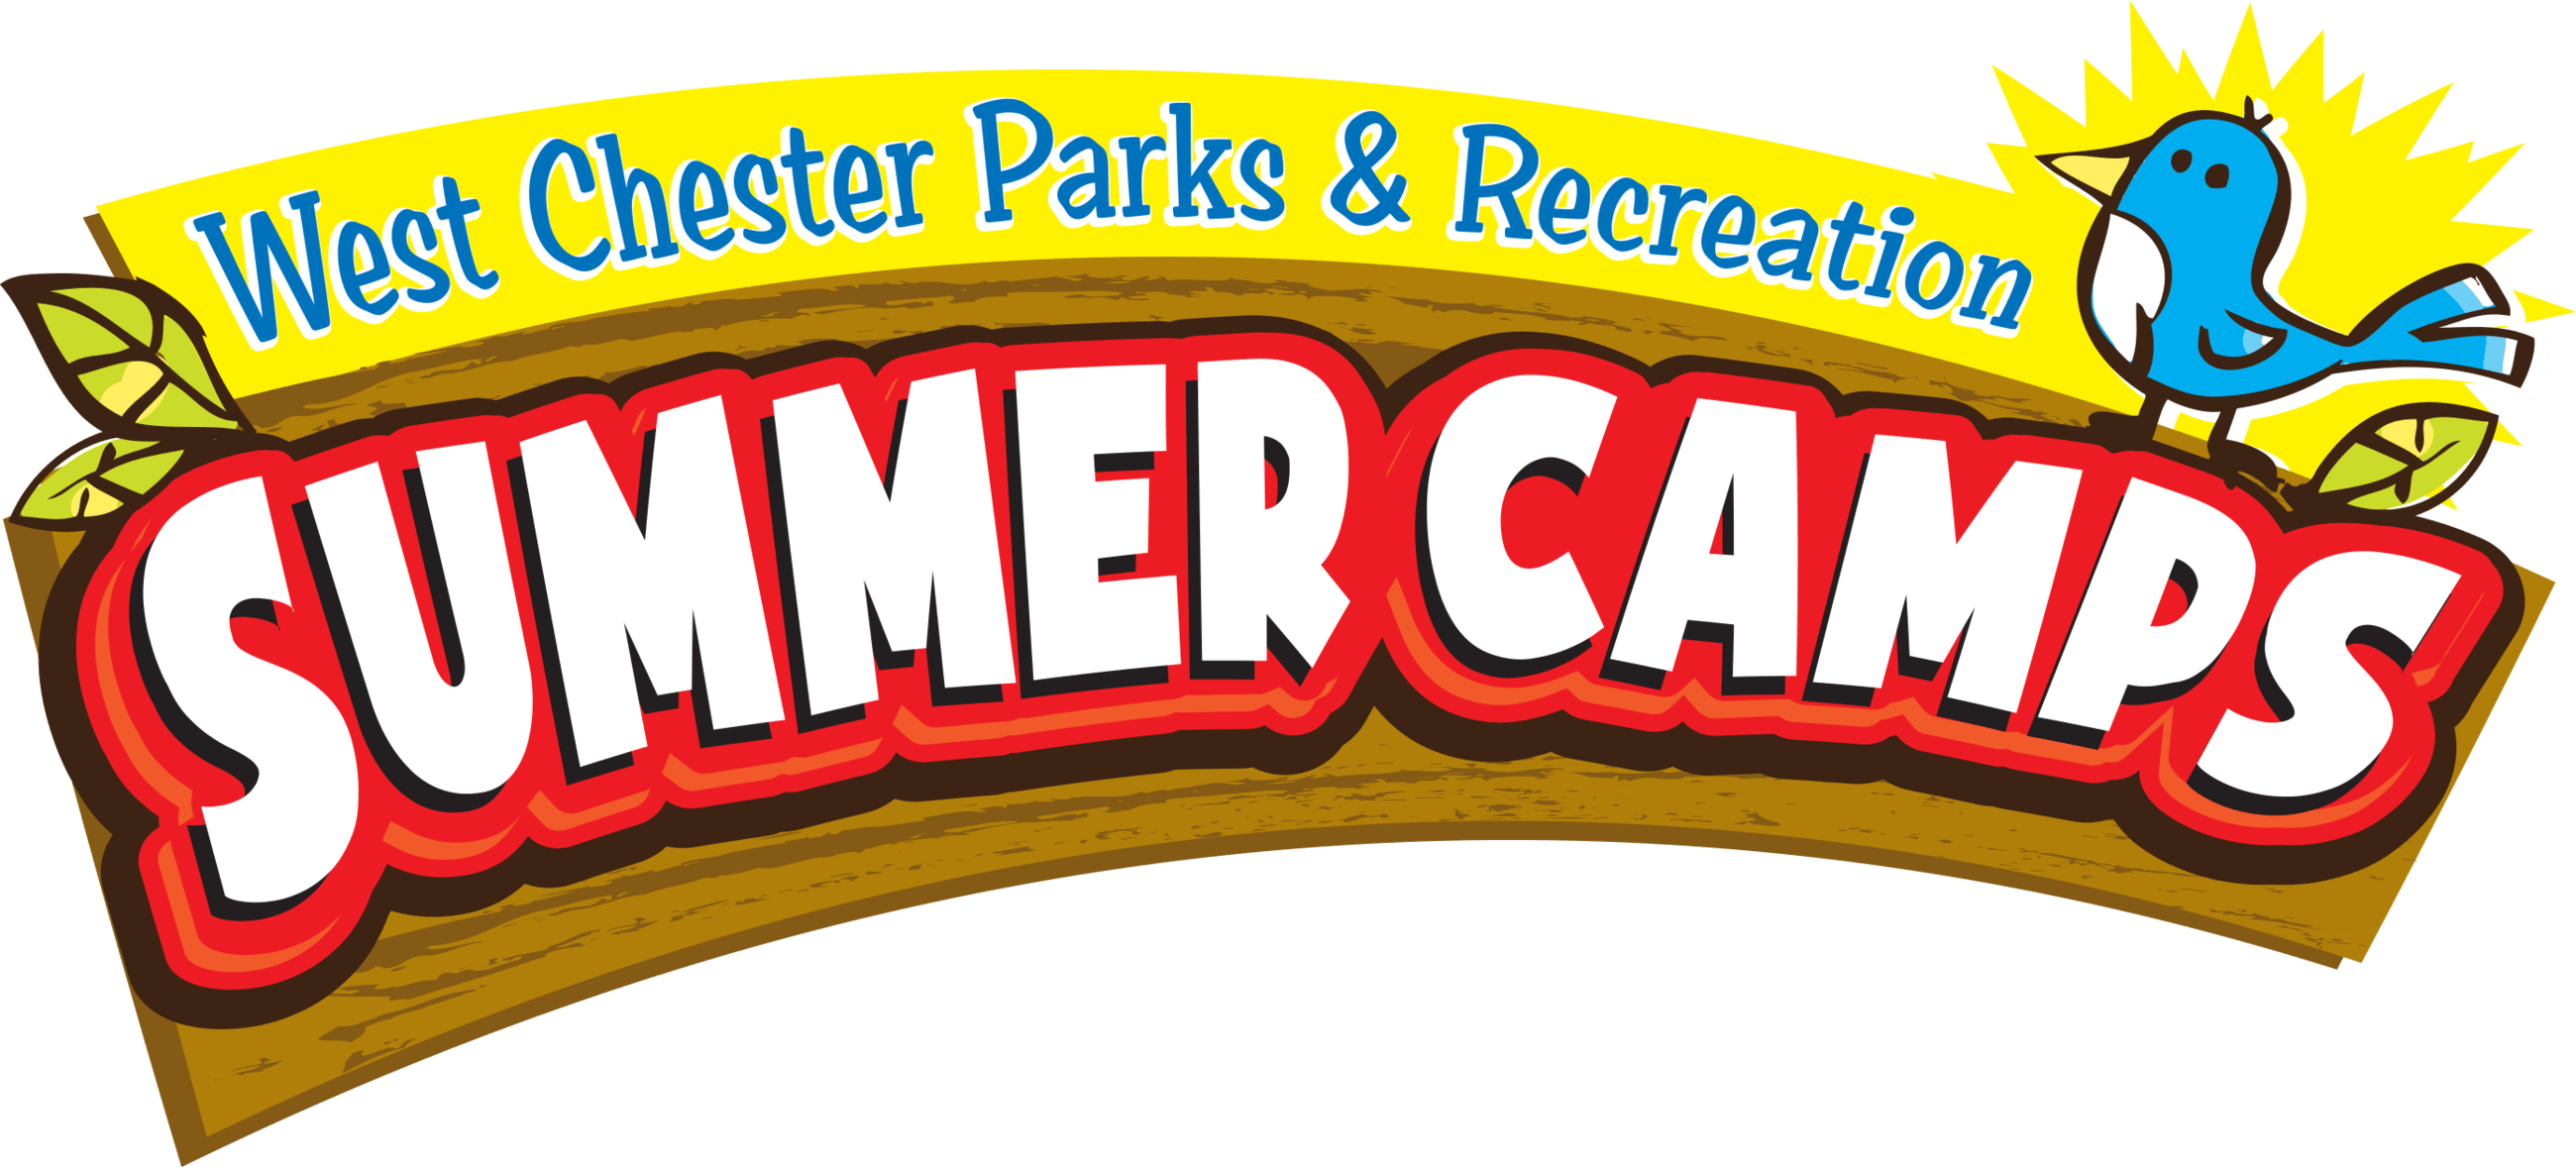 West Chester Parks & Recreation Summer Camps logo